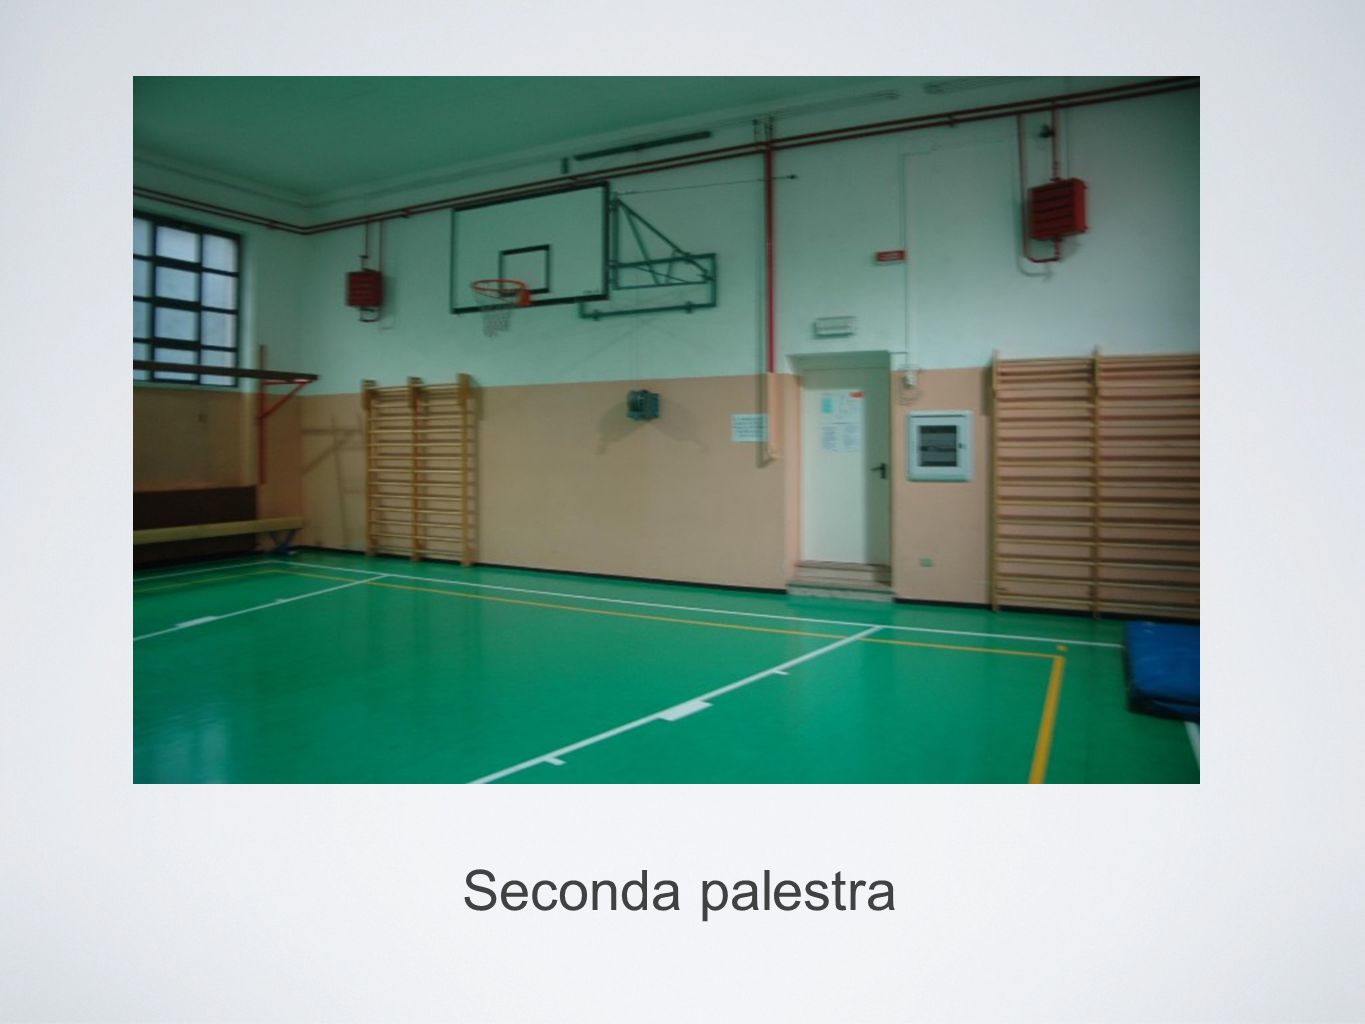 Seconda palestra